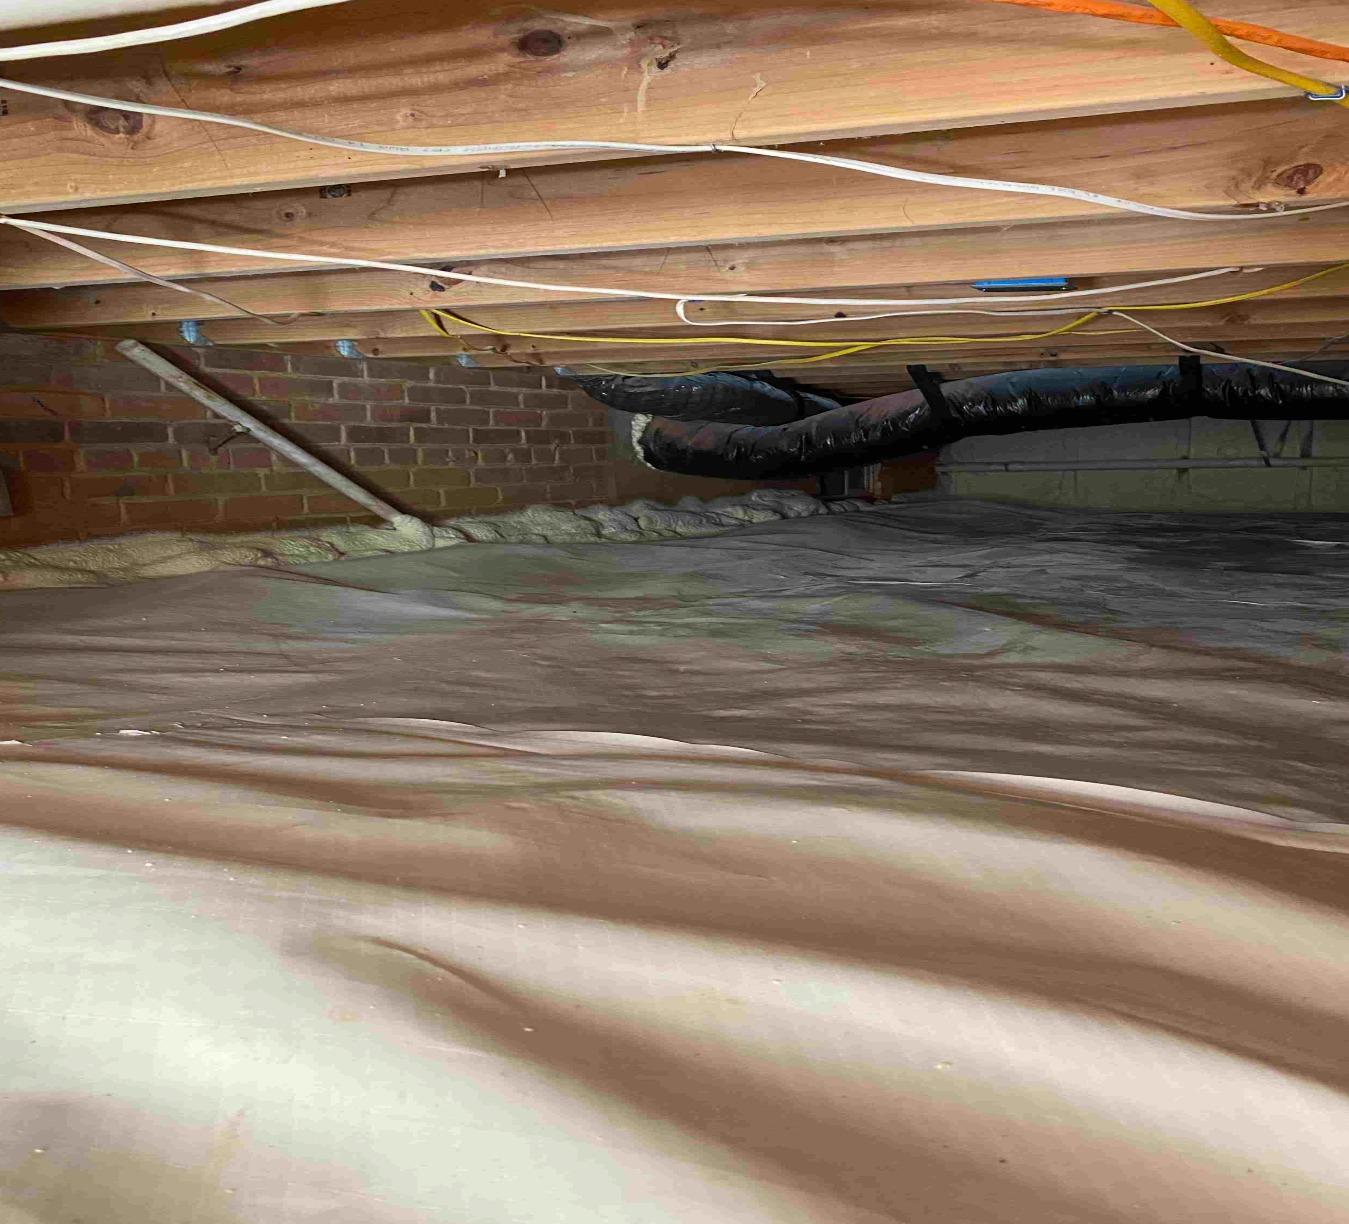 Crawl Space Encapsulation in Silver Spring, MD - After Photo